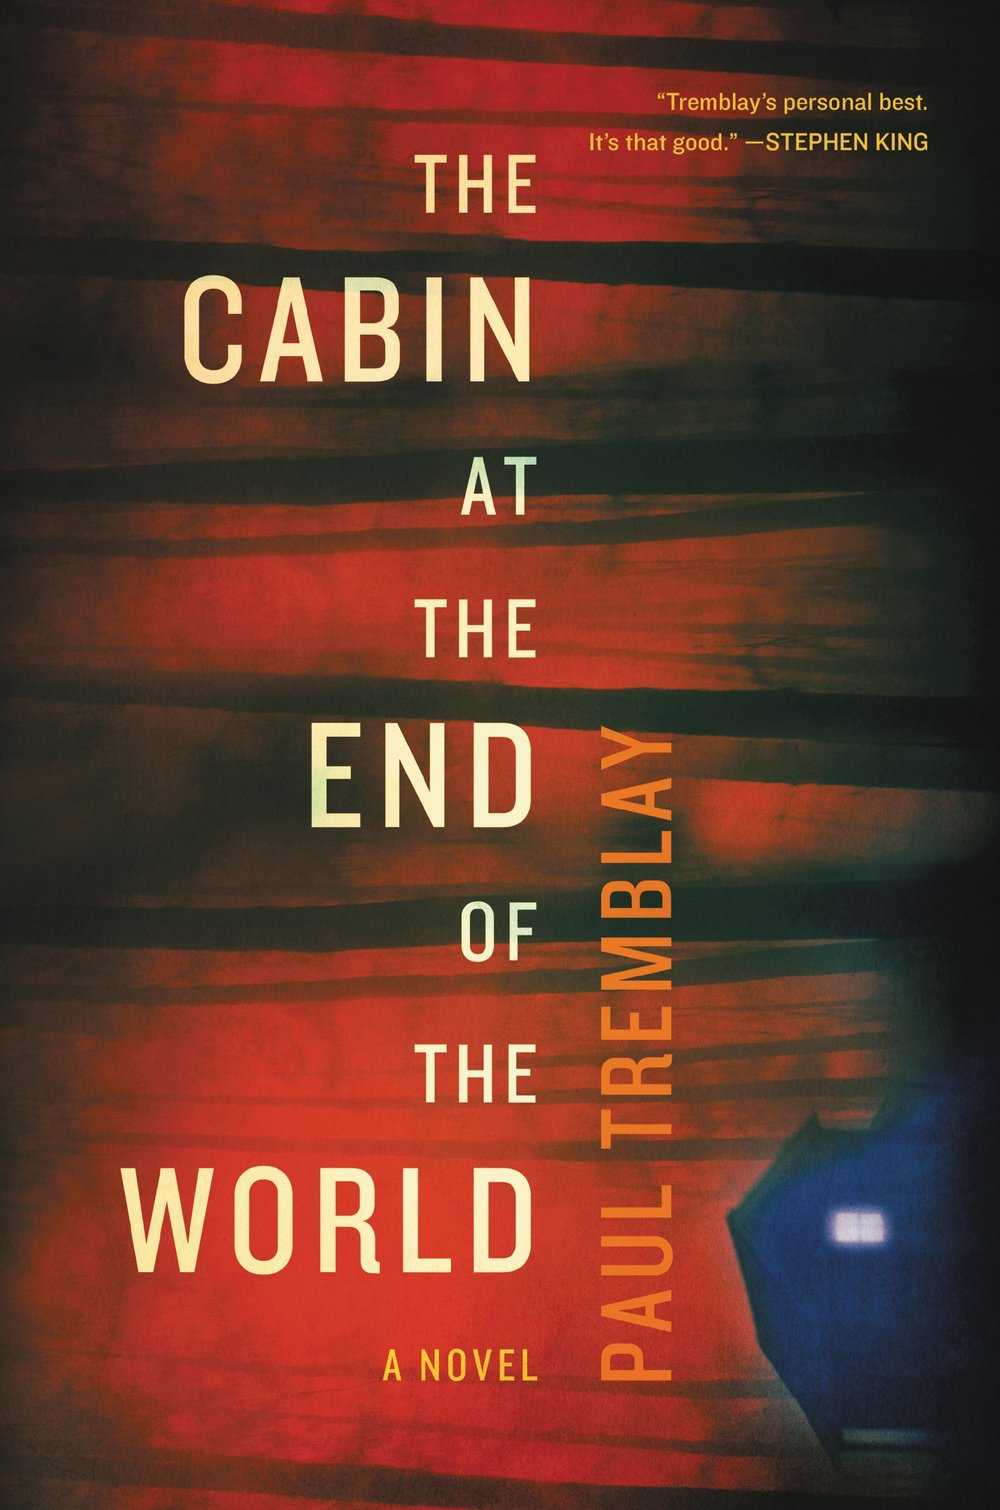 The Cabin at the End of the World_Paul Tremblay.jpg